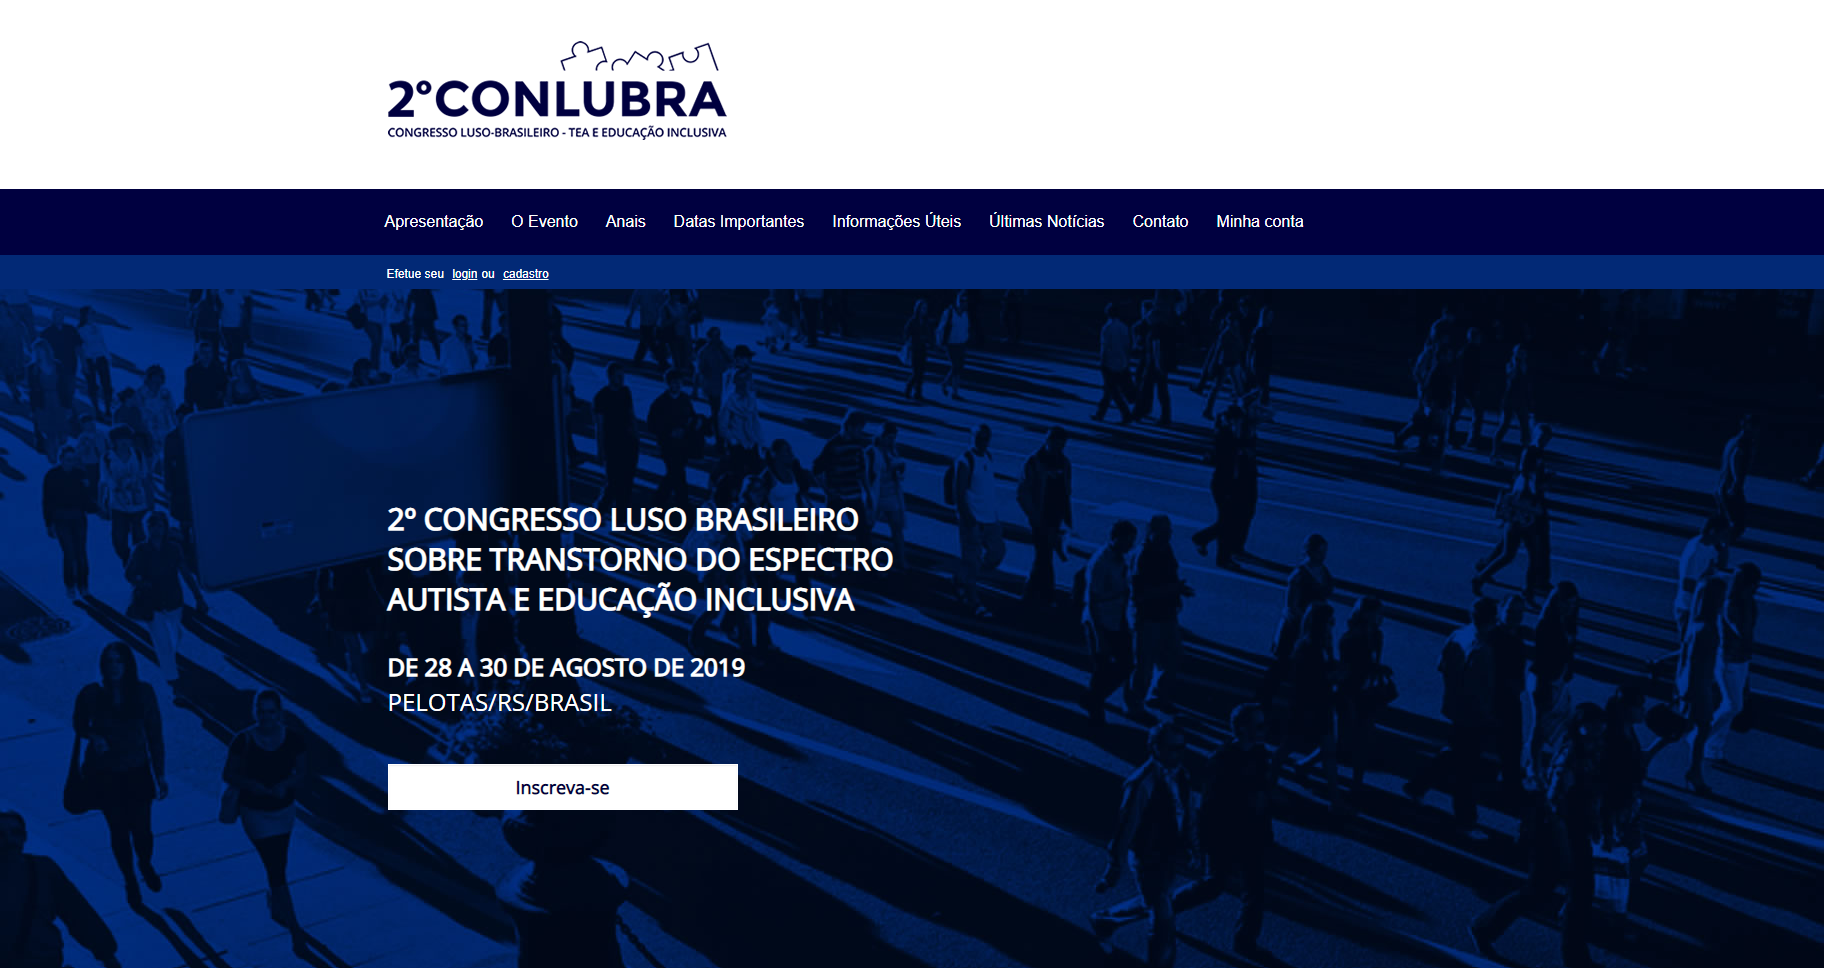 Capa do website